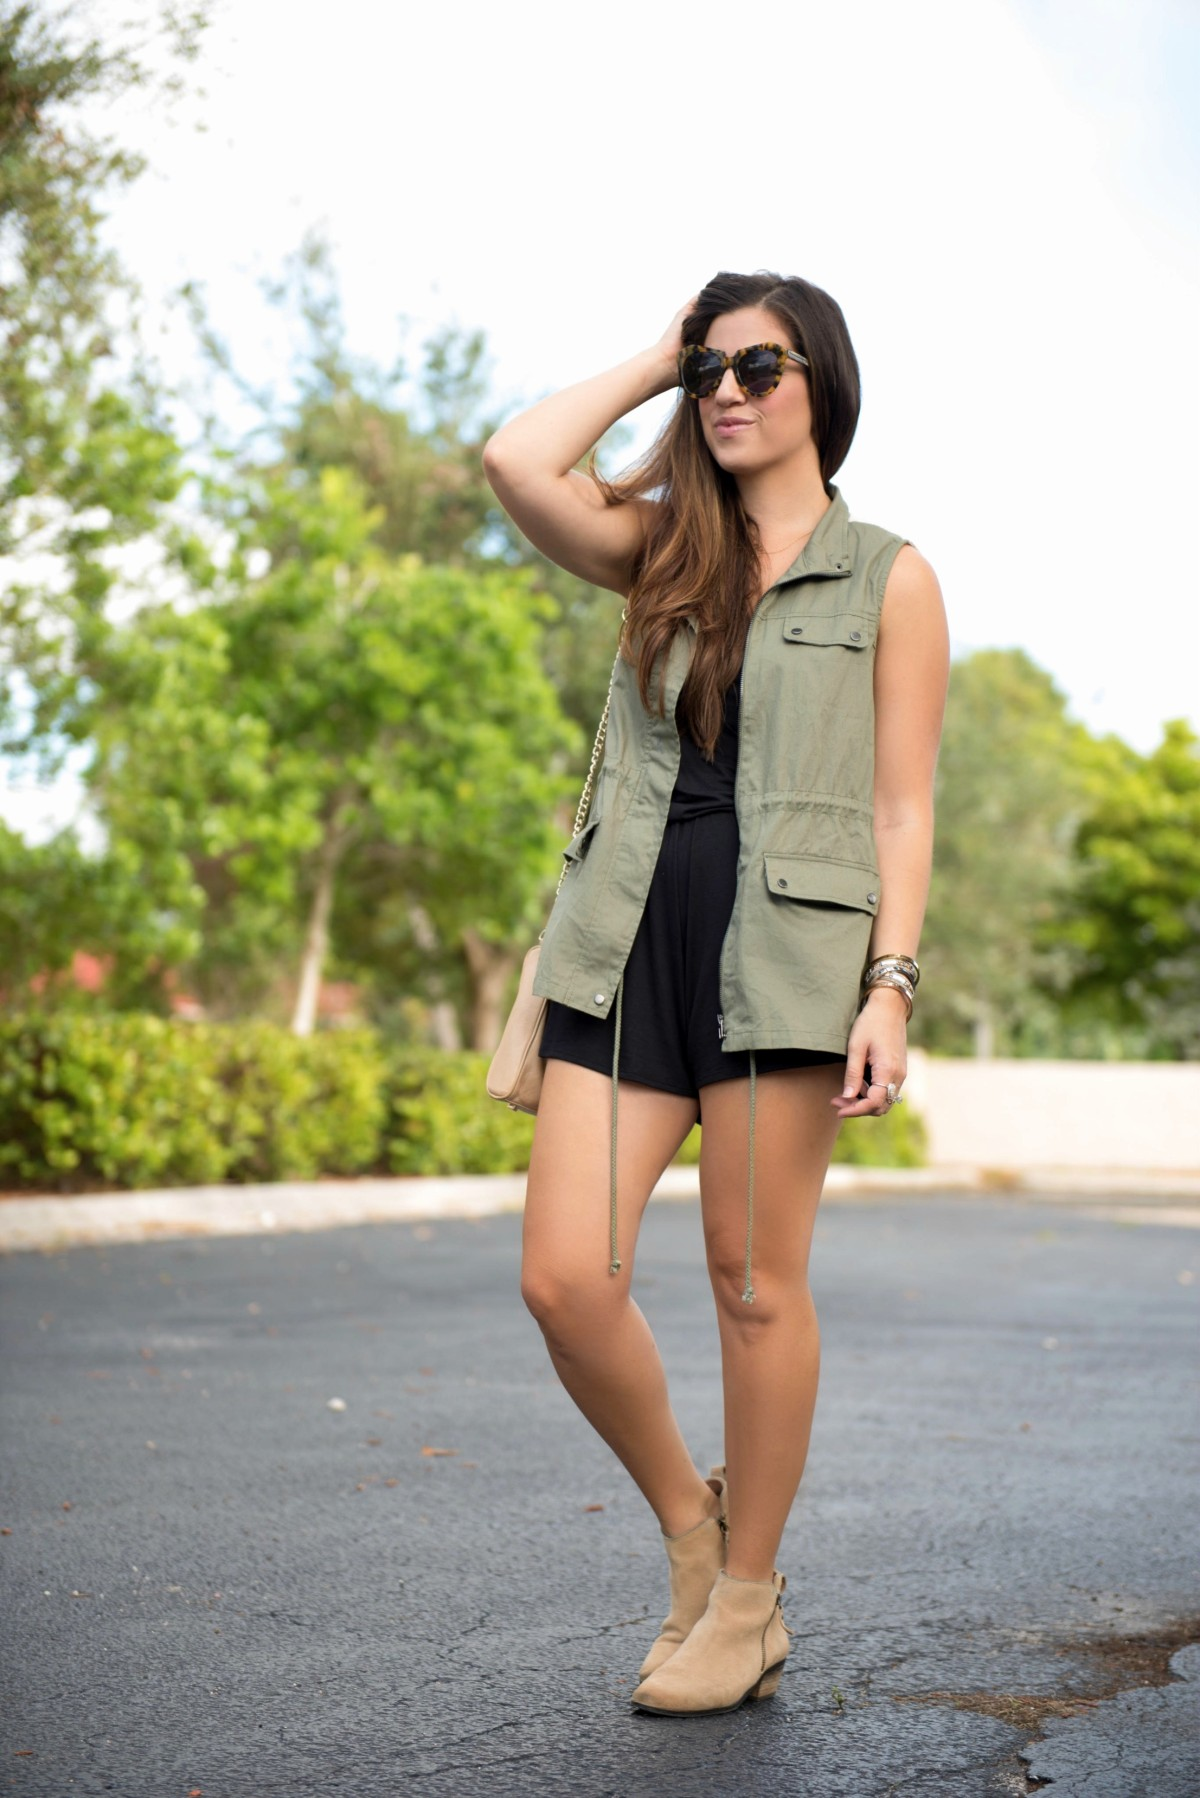 best way to style a utility vest for fall, jaime cittadino, shop riffraff, olive aztec vest